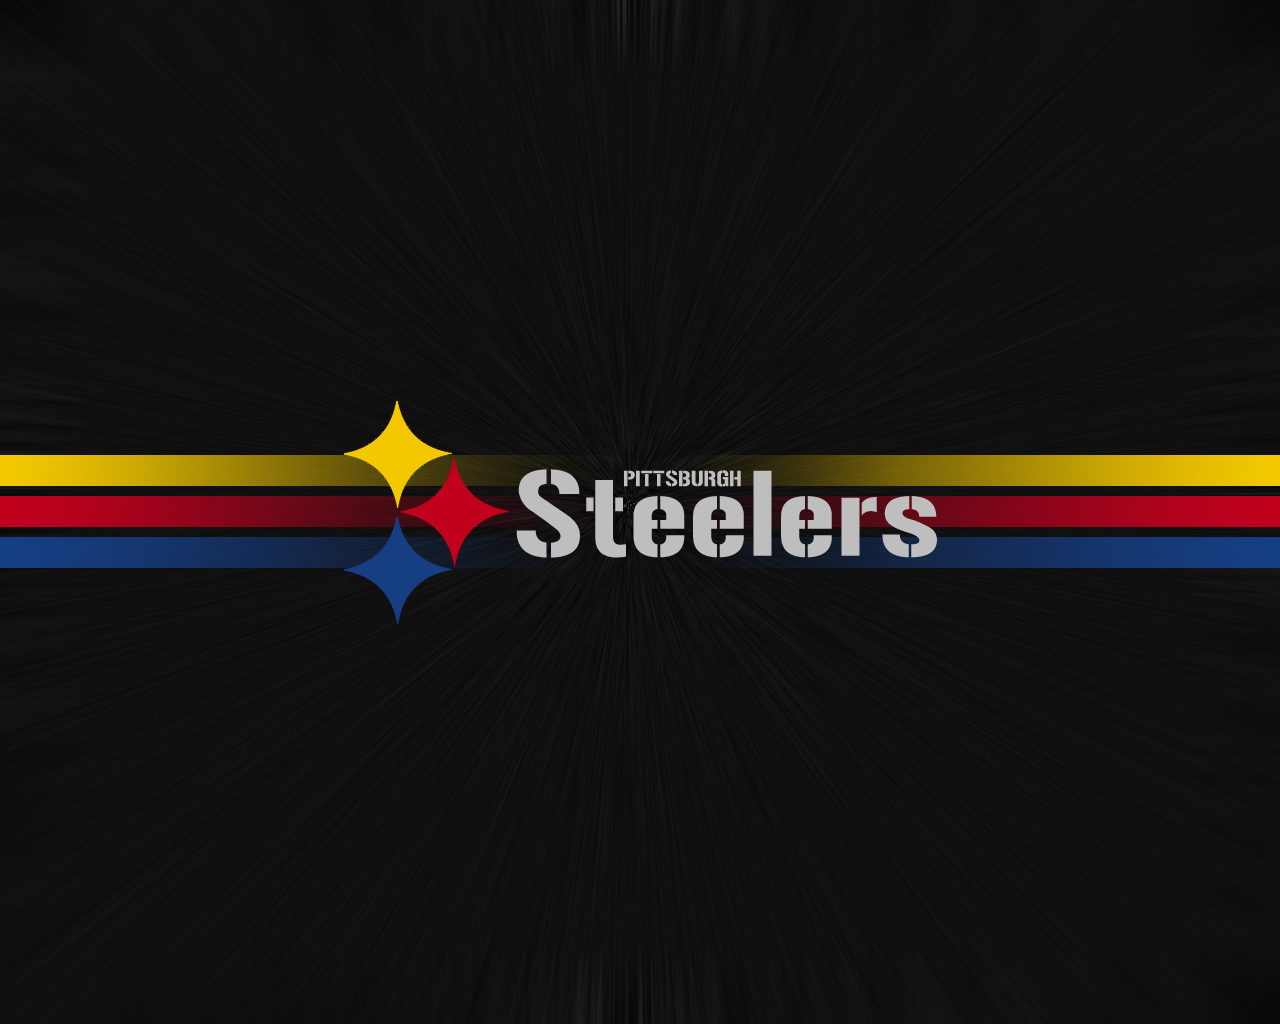 Pittsburgh Steelers Logo Wallpaper: Steelers Logo Wallpaper